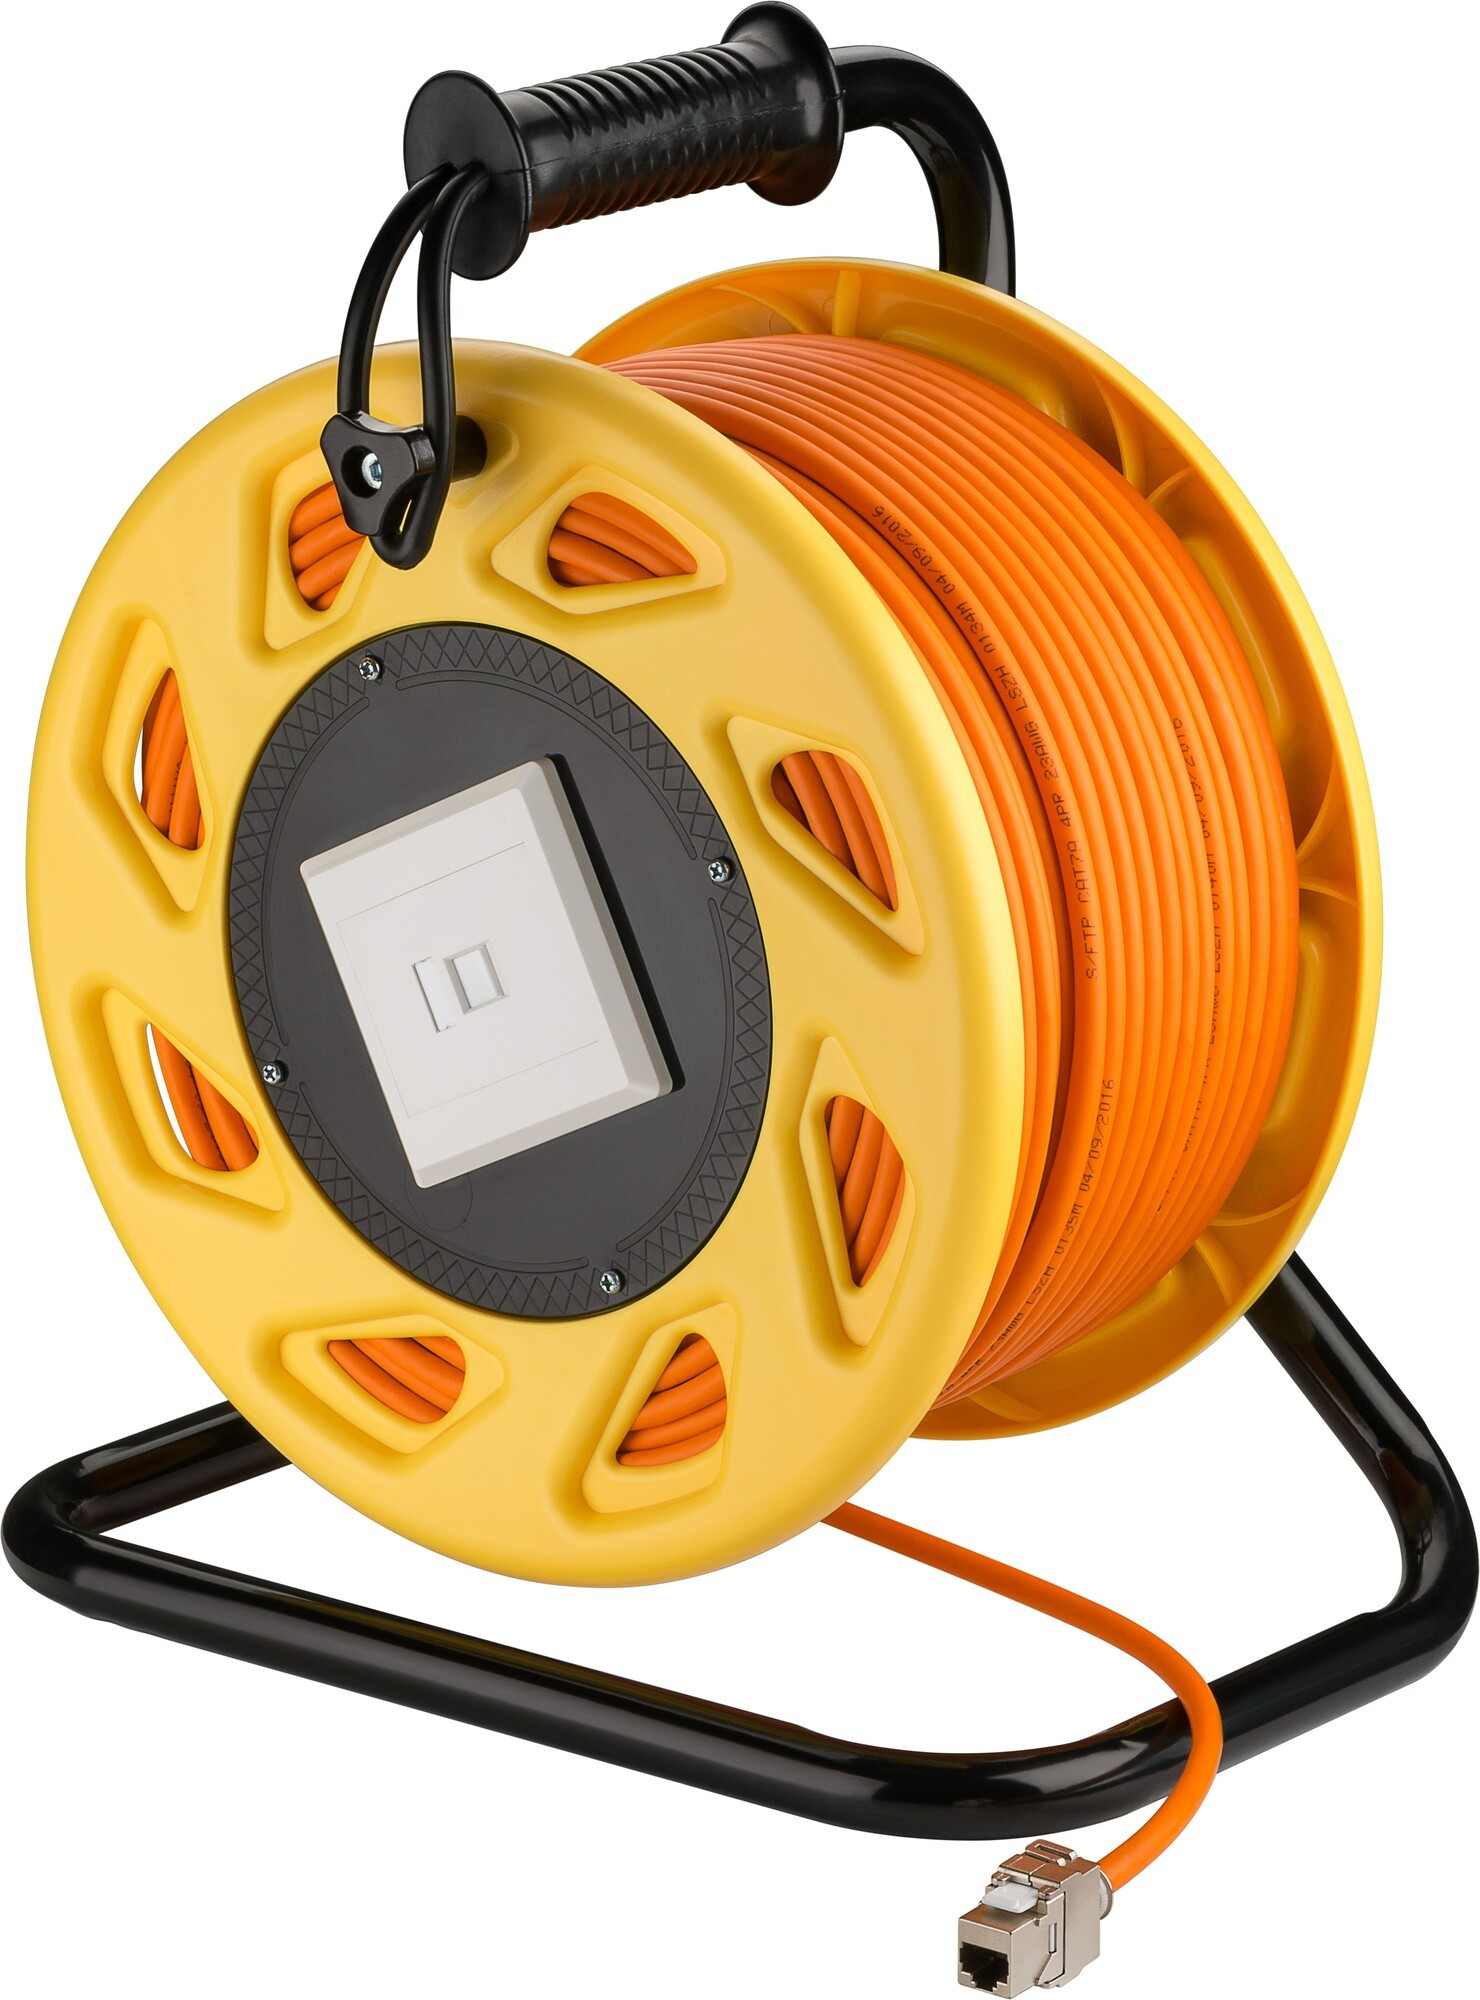 Afbeelding van CAT7 S/FTP cable reel with CAT6a keystone connector - RJ45 - 50 m